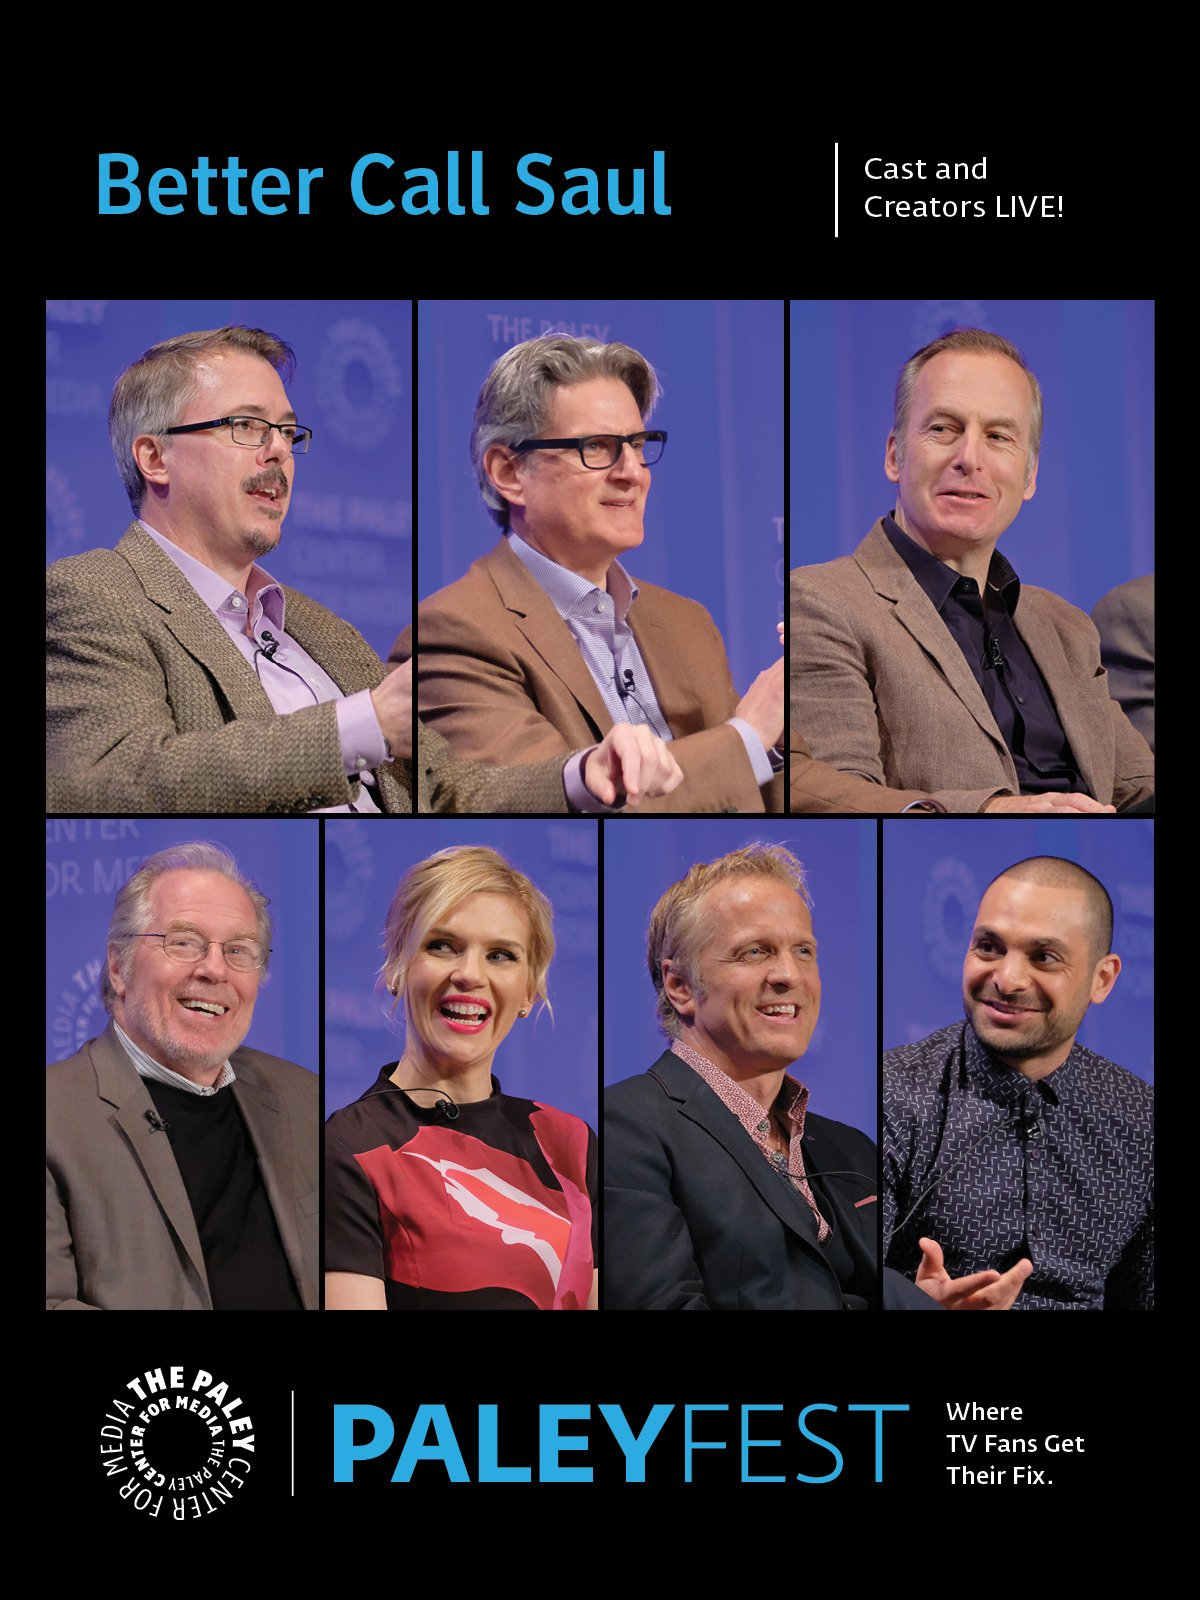 Better Call Saul: Cast and Creators PaleyFest on Amazon Prime Video UK